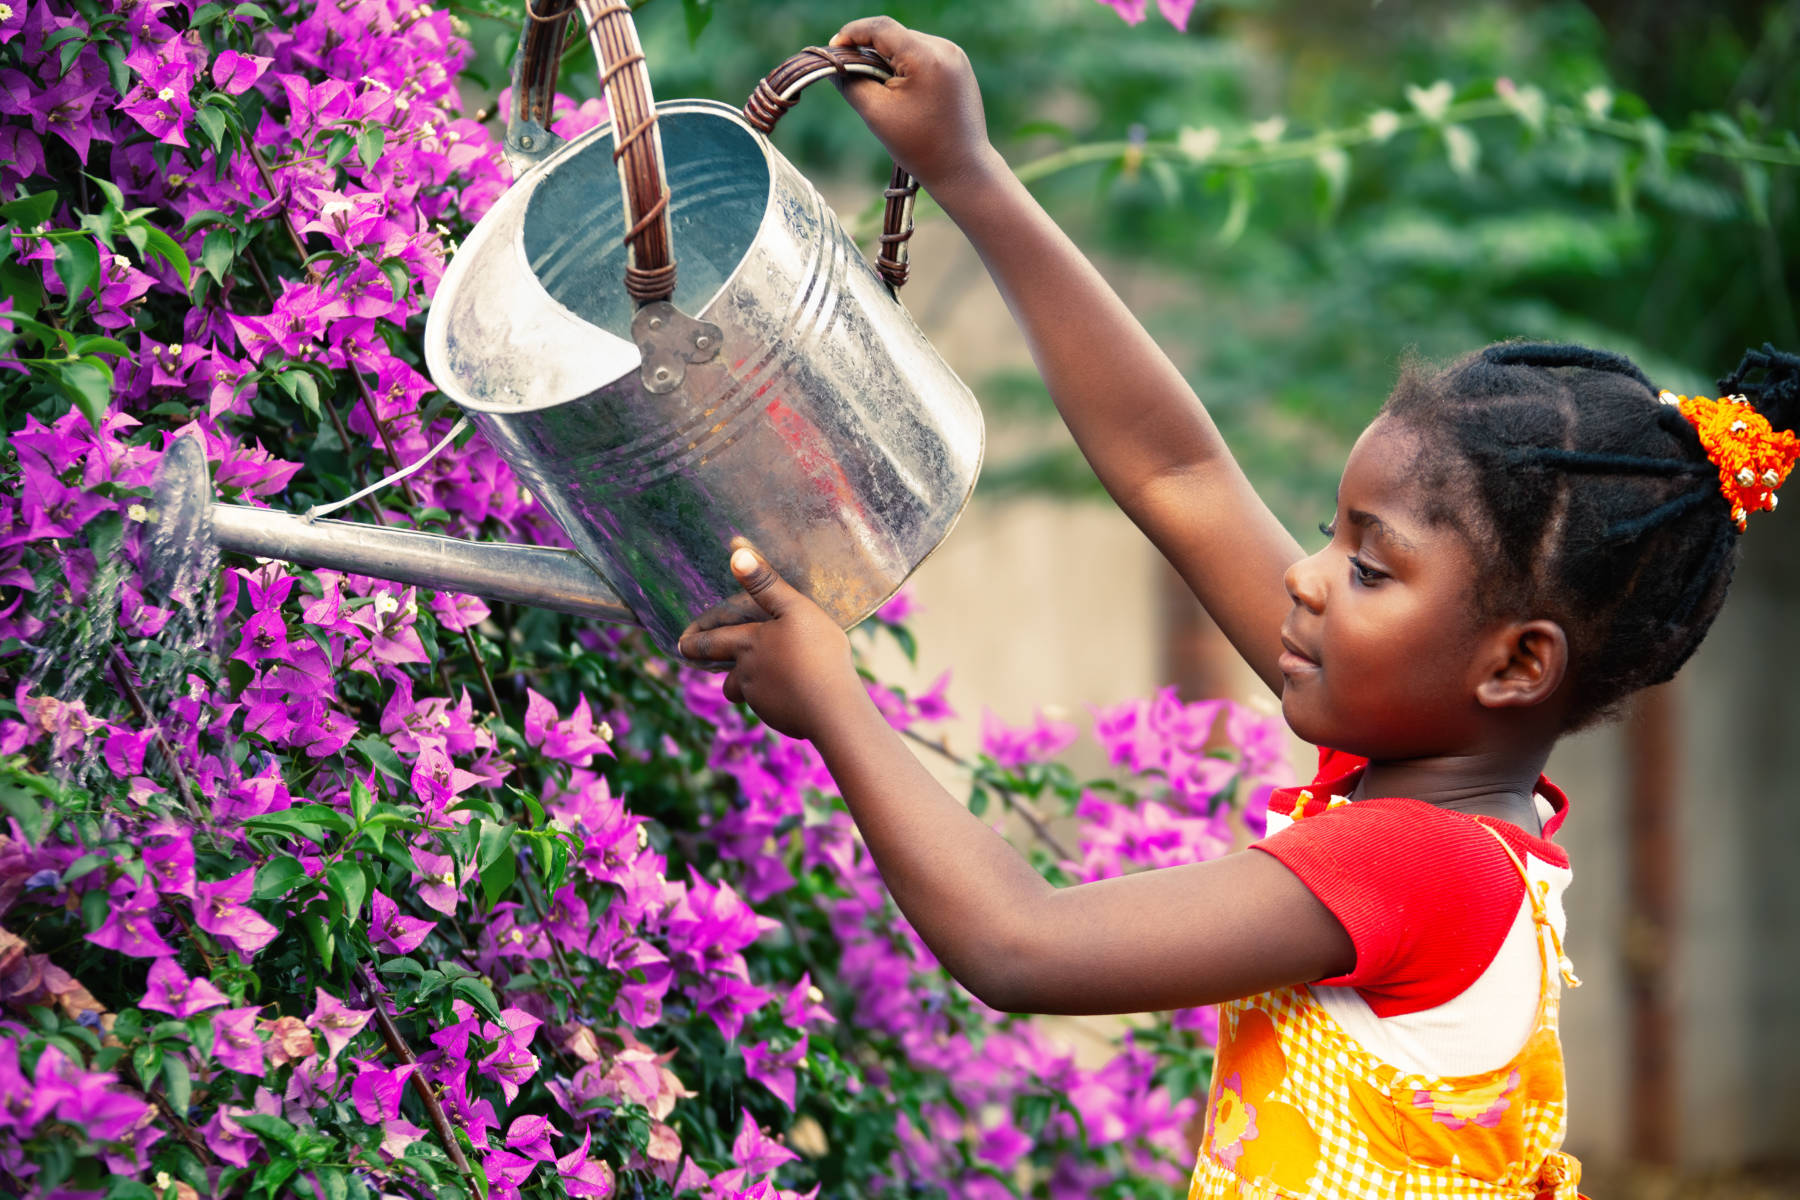 child pouring the water onto plants